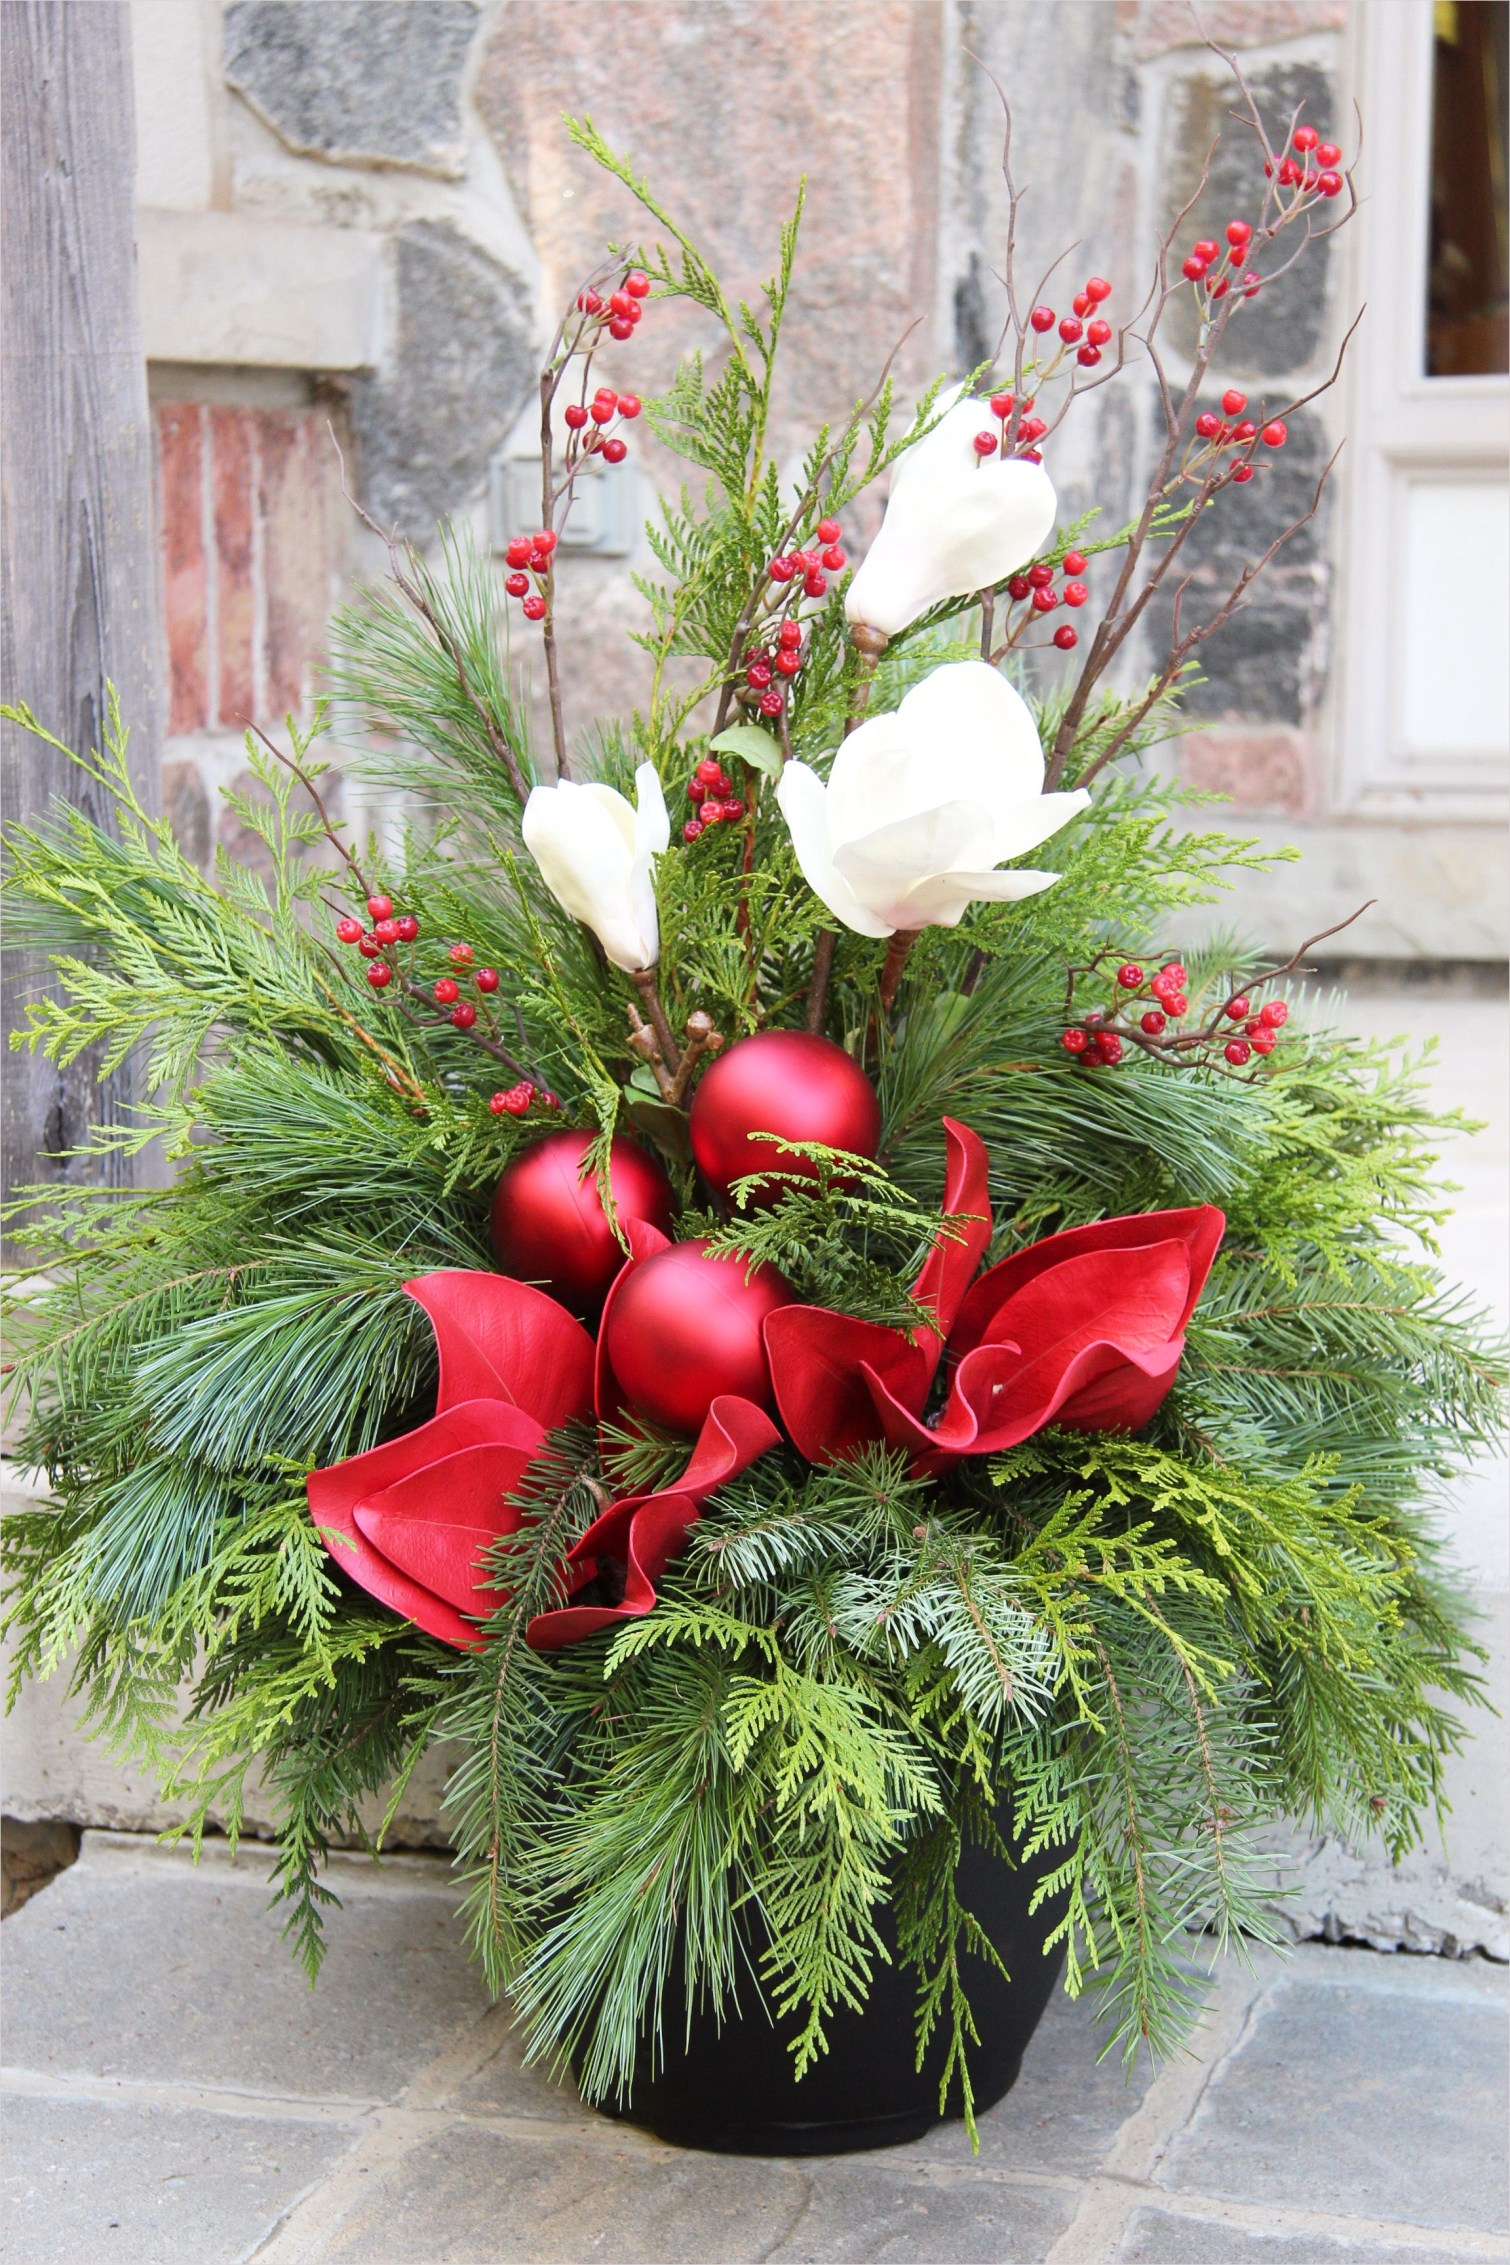 42 Beautiful Christmas Outdoor Pot Decorations Ideas 54 Outdoor Christmas Planter Outdoor Christmas Planters Pinterest 1